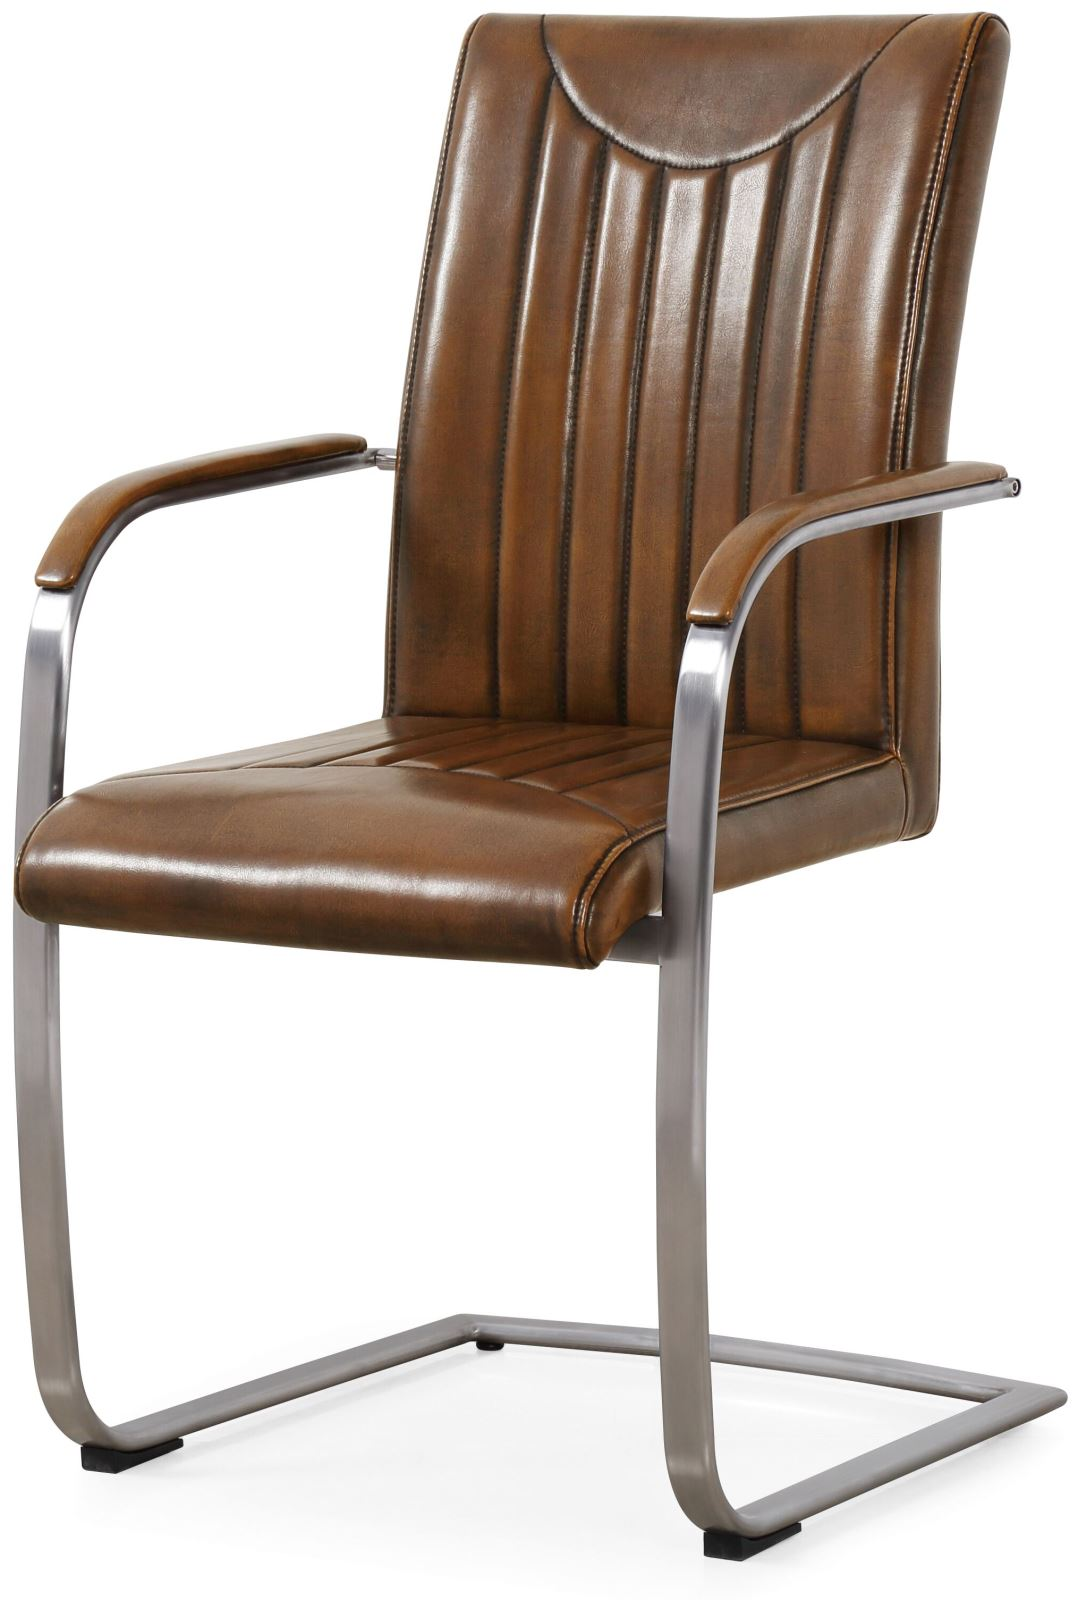 industrial dining chair leather sale classic furniture retro curve